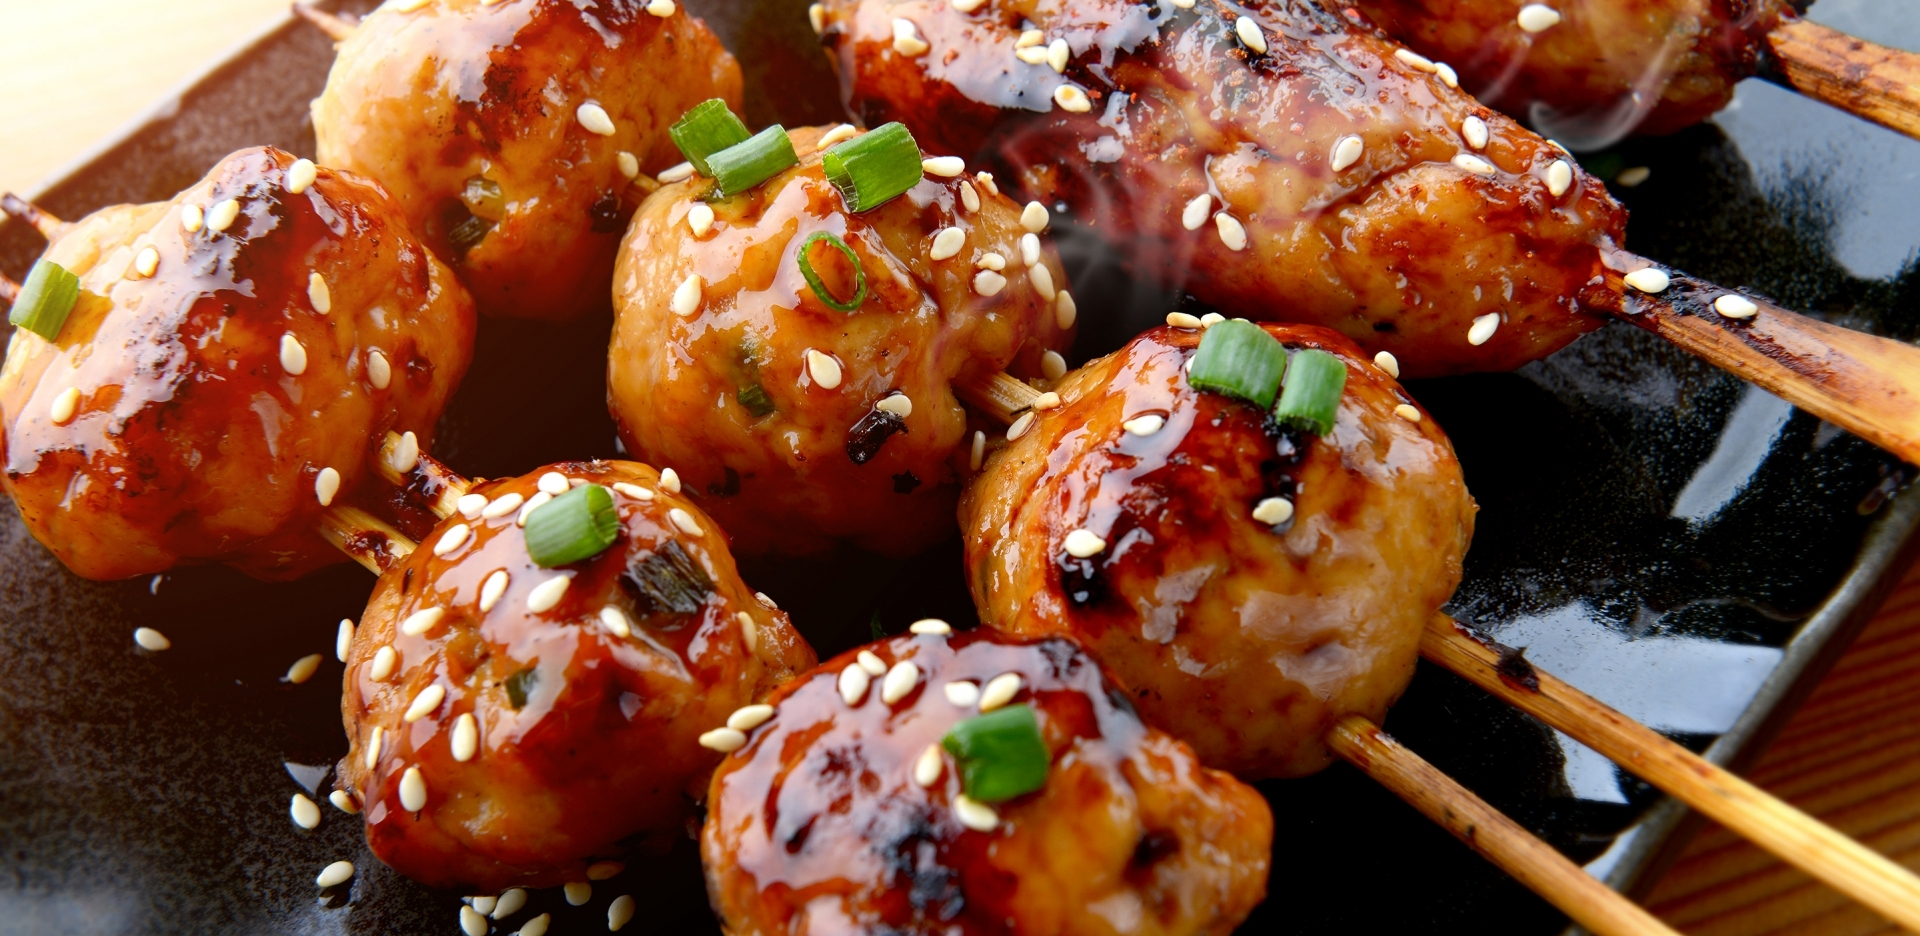 Tsukune (Chicken Meatballs)